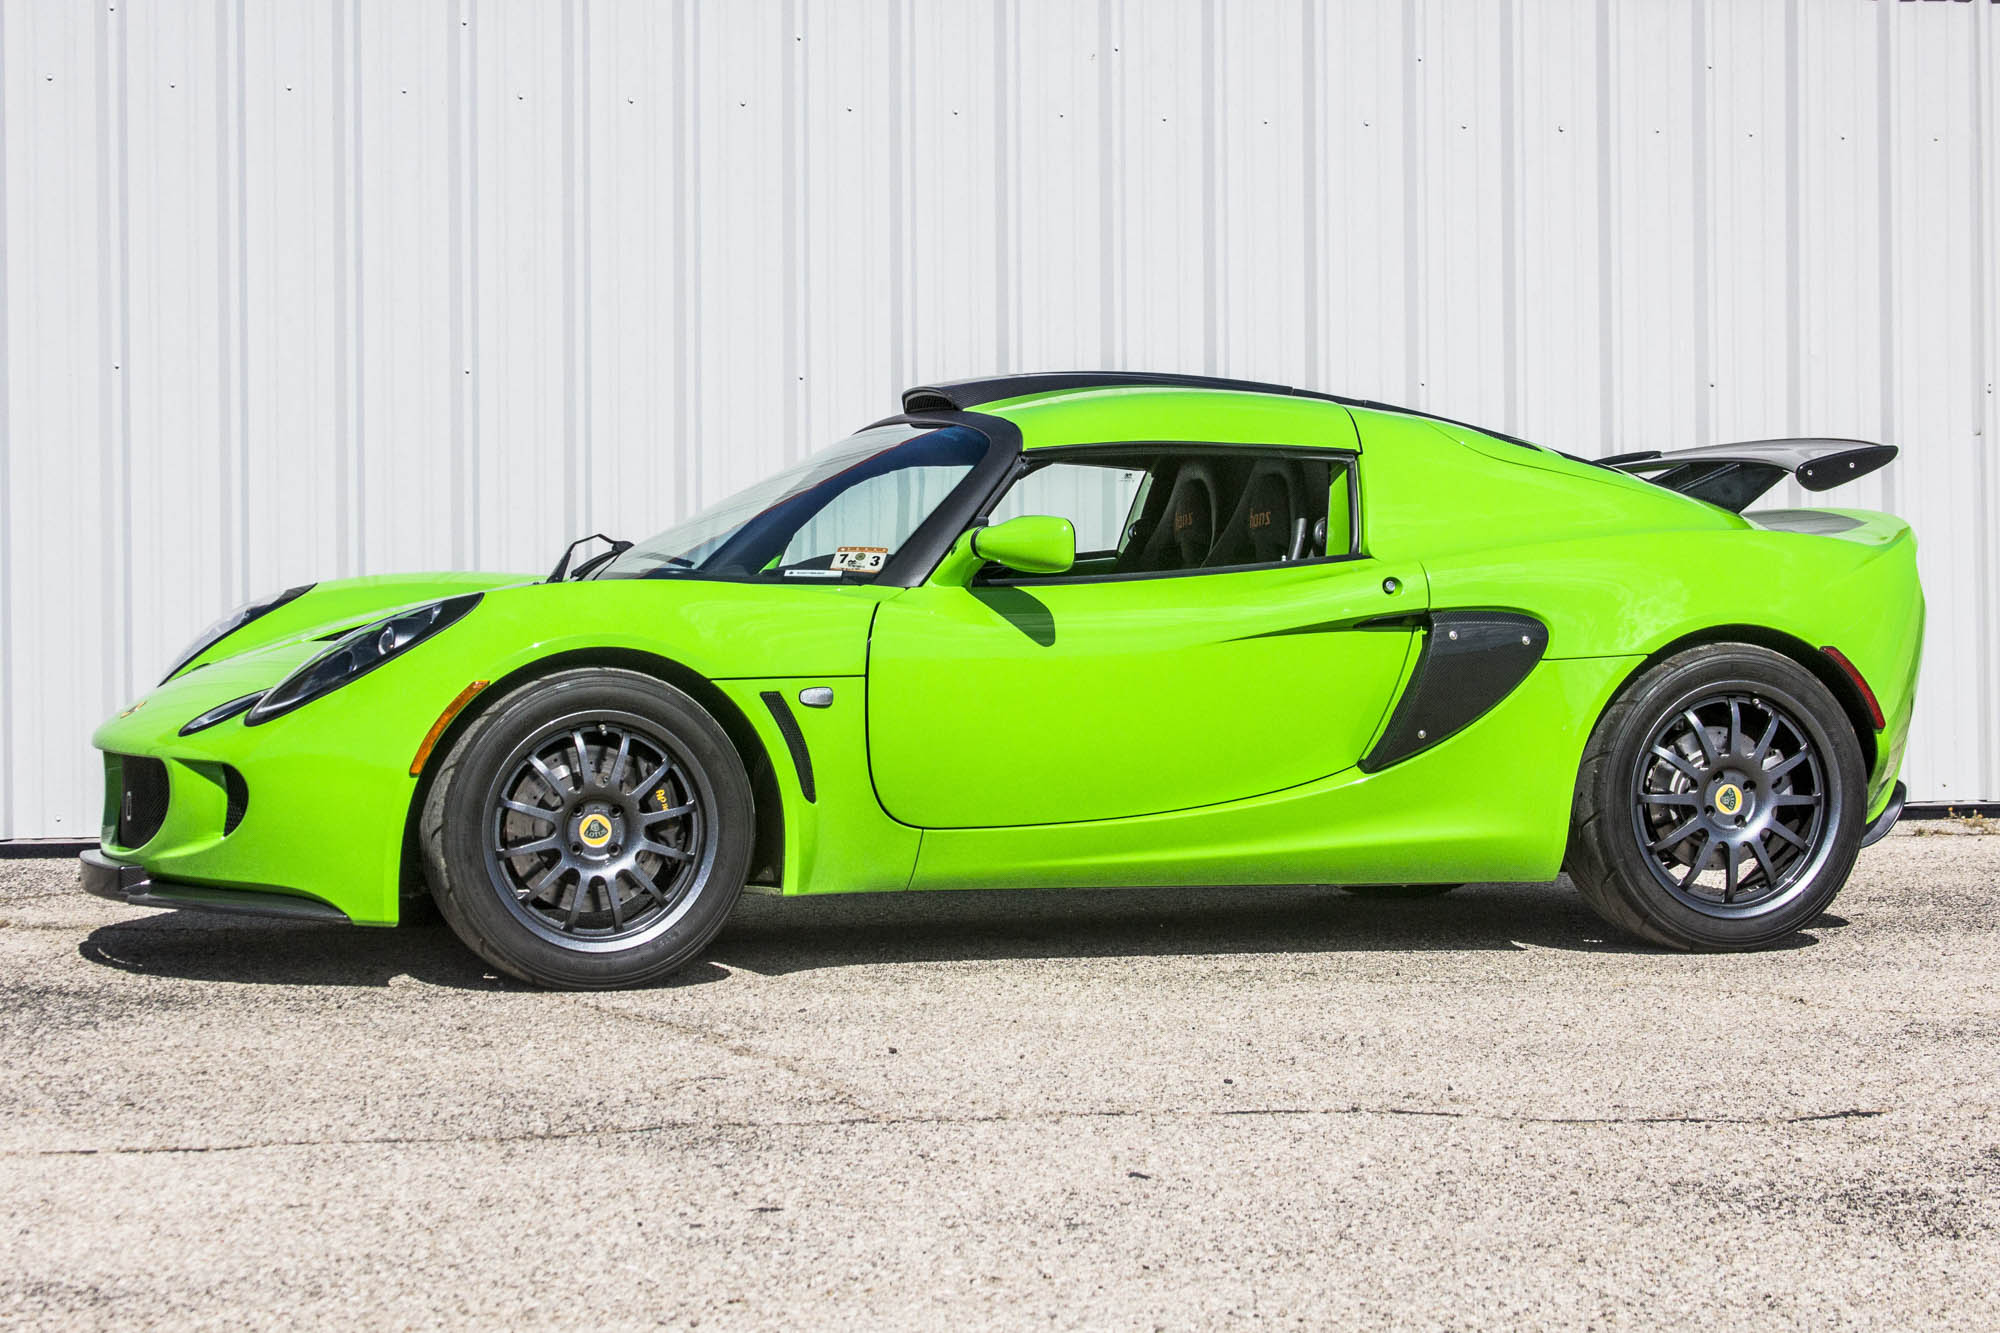 Jerry Seinfeld's Green Lotus Is for Sale in Texas - Bloomberg